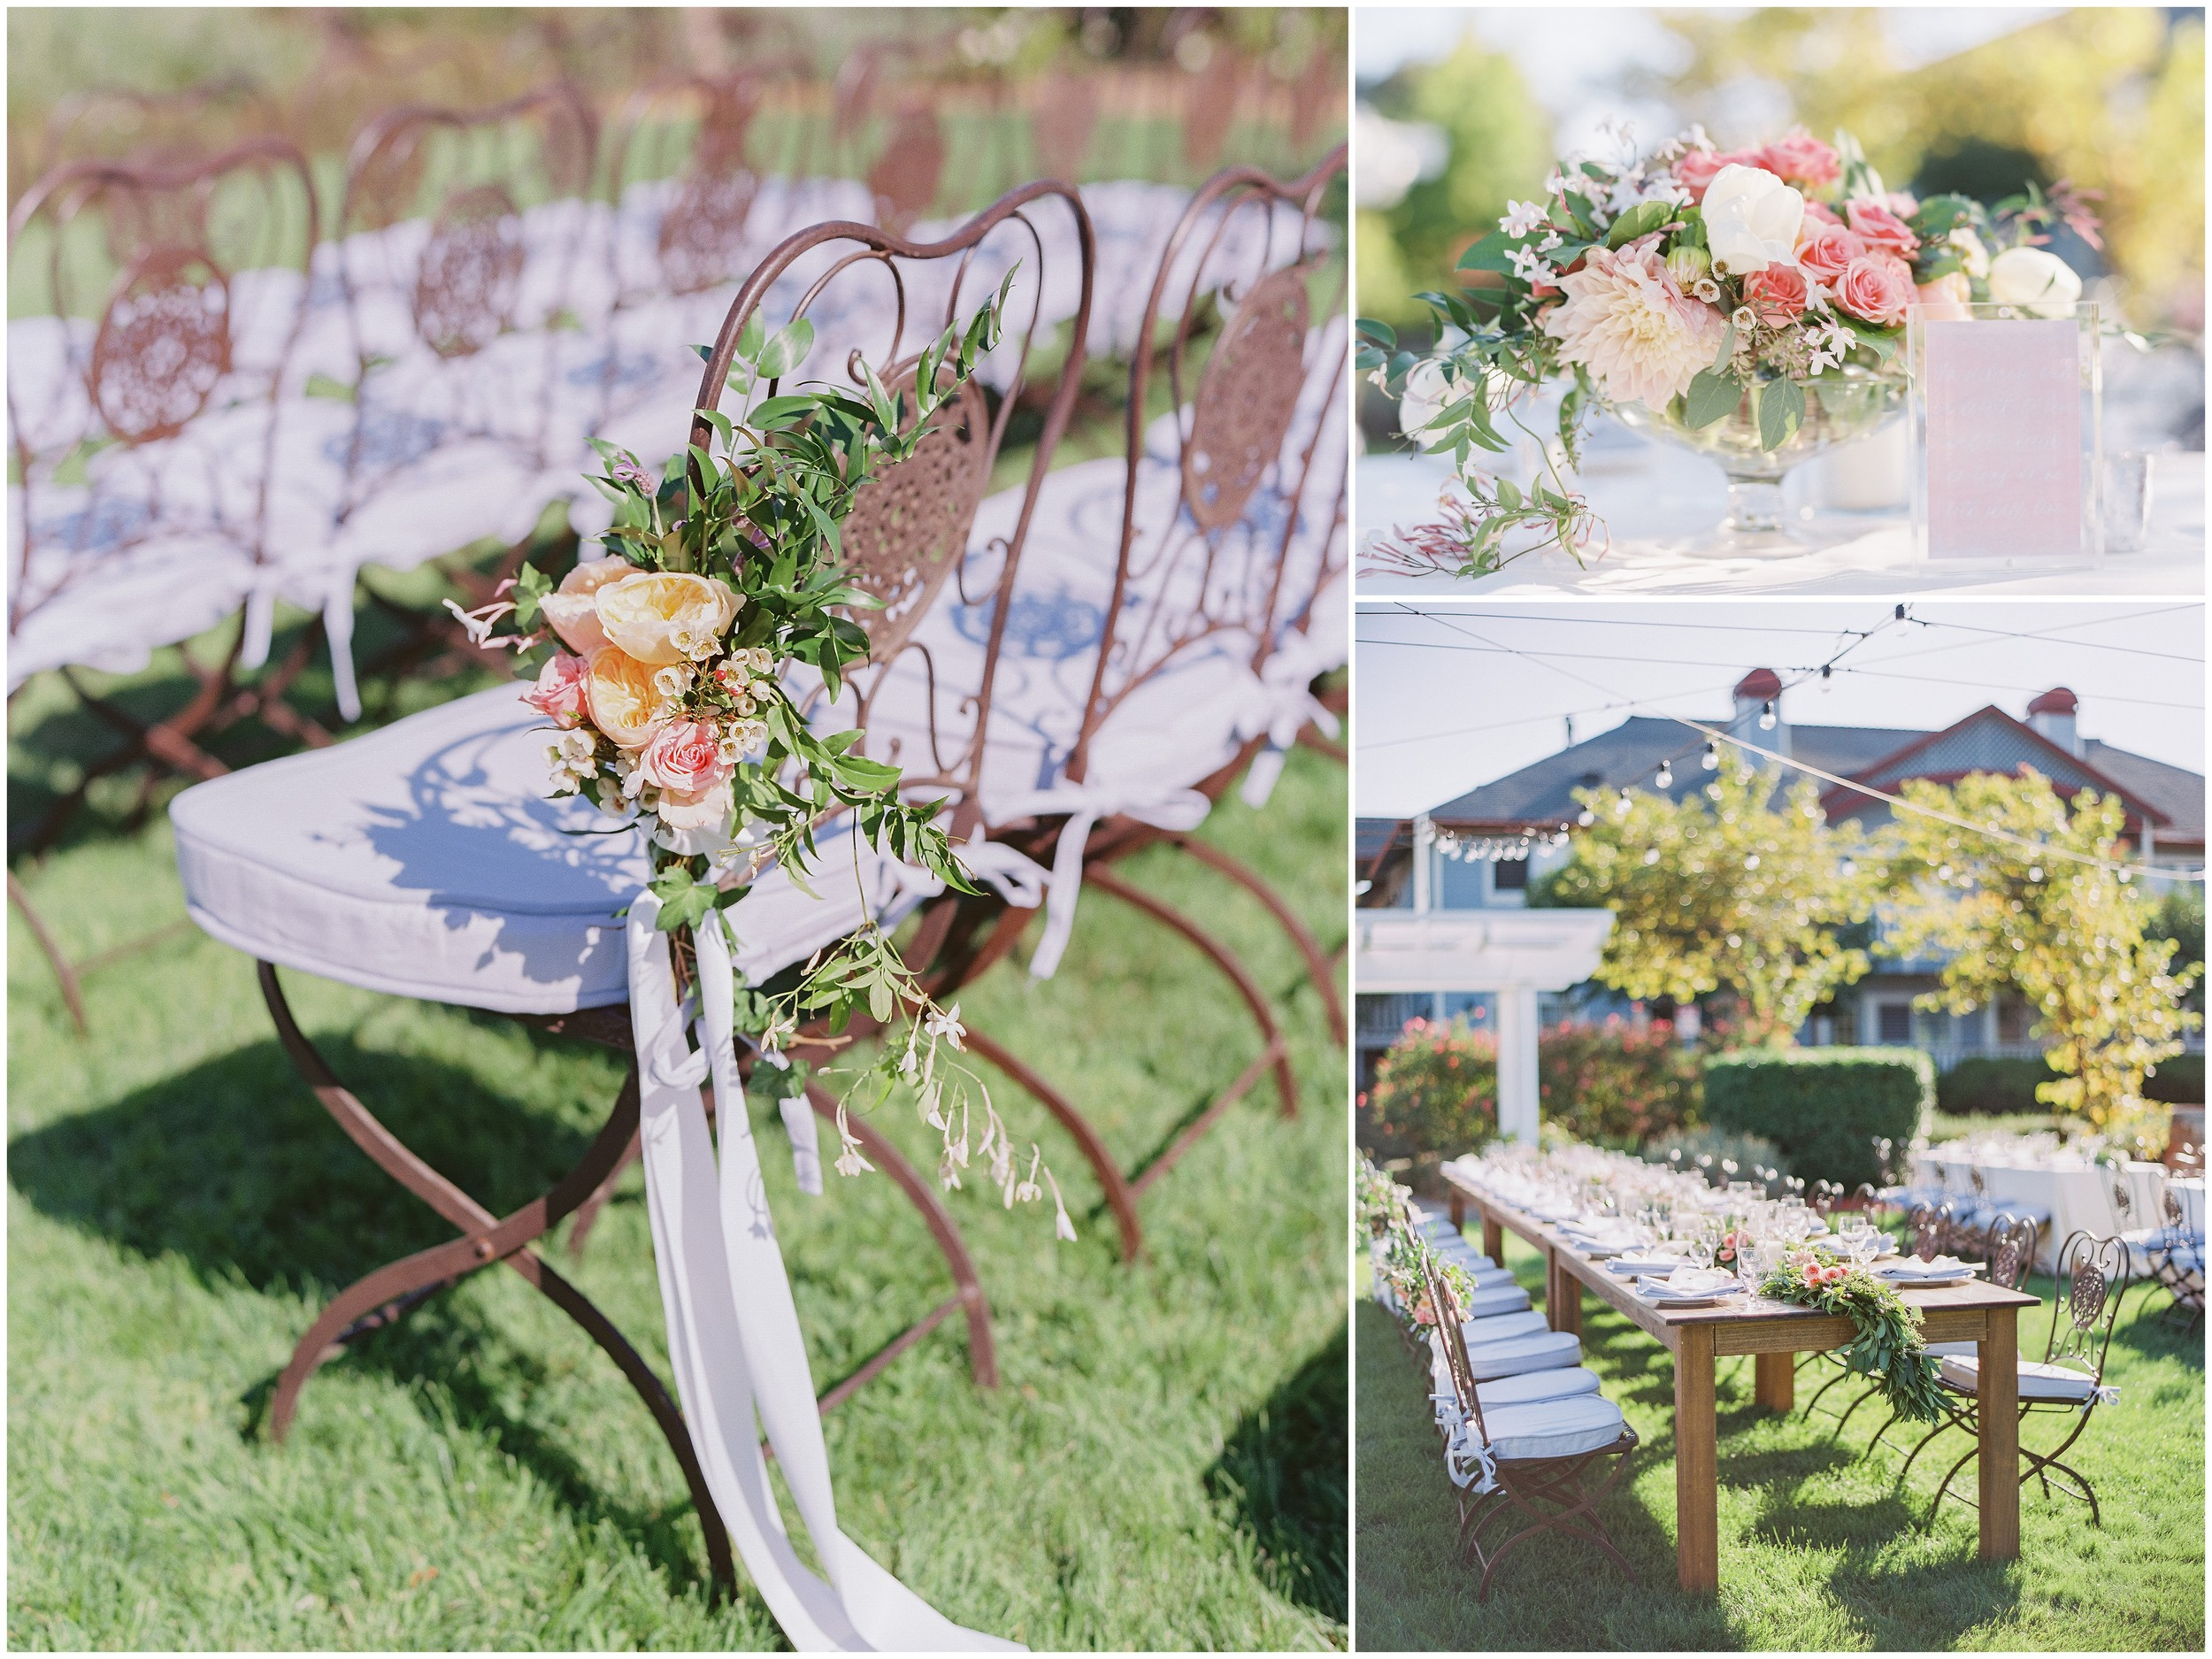 L'Relyea Events - Event Planning & Design- Geyserville Inn, CA  Wedding venues in Wine Country